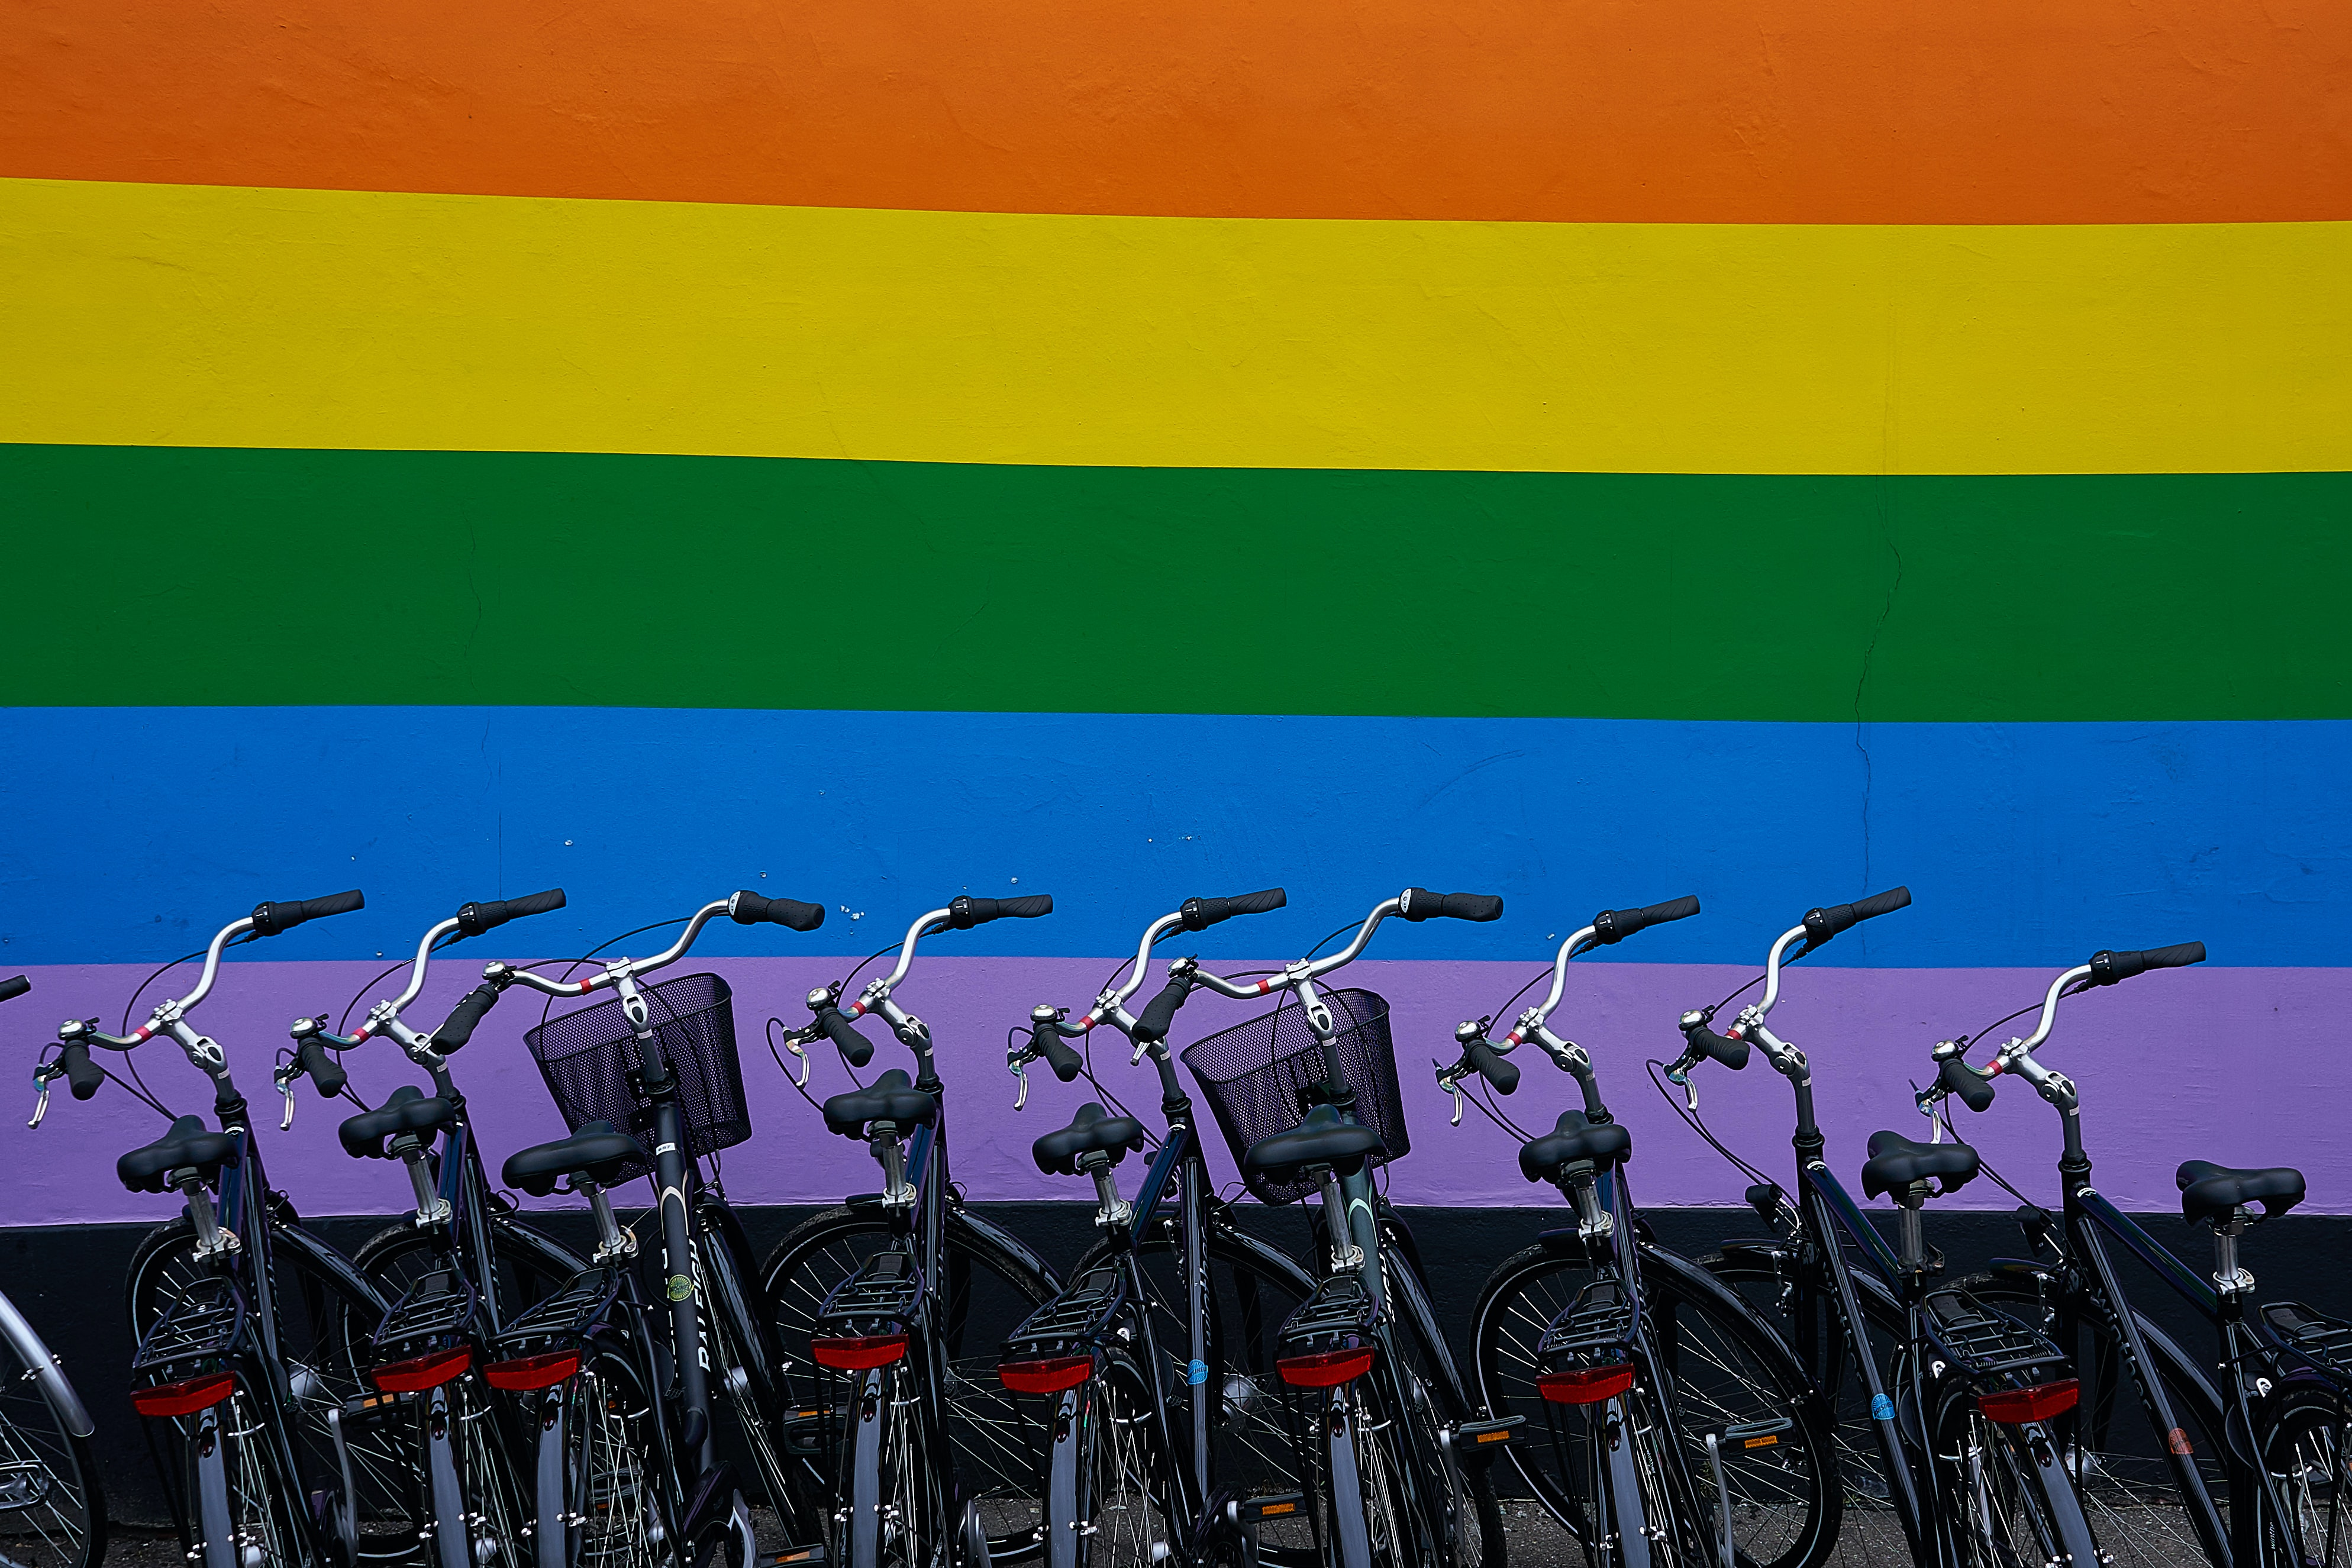 black commuter bikes parked near multicolored wall